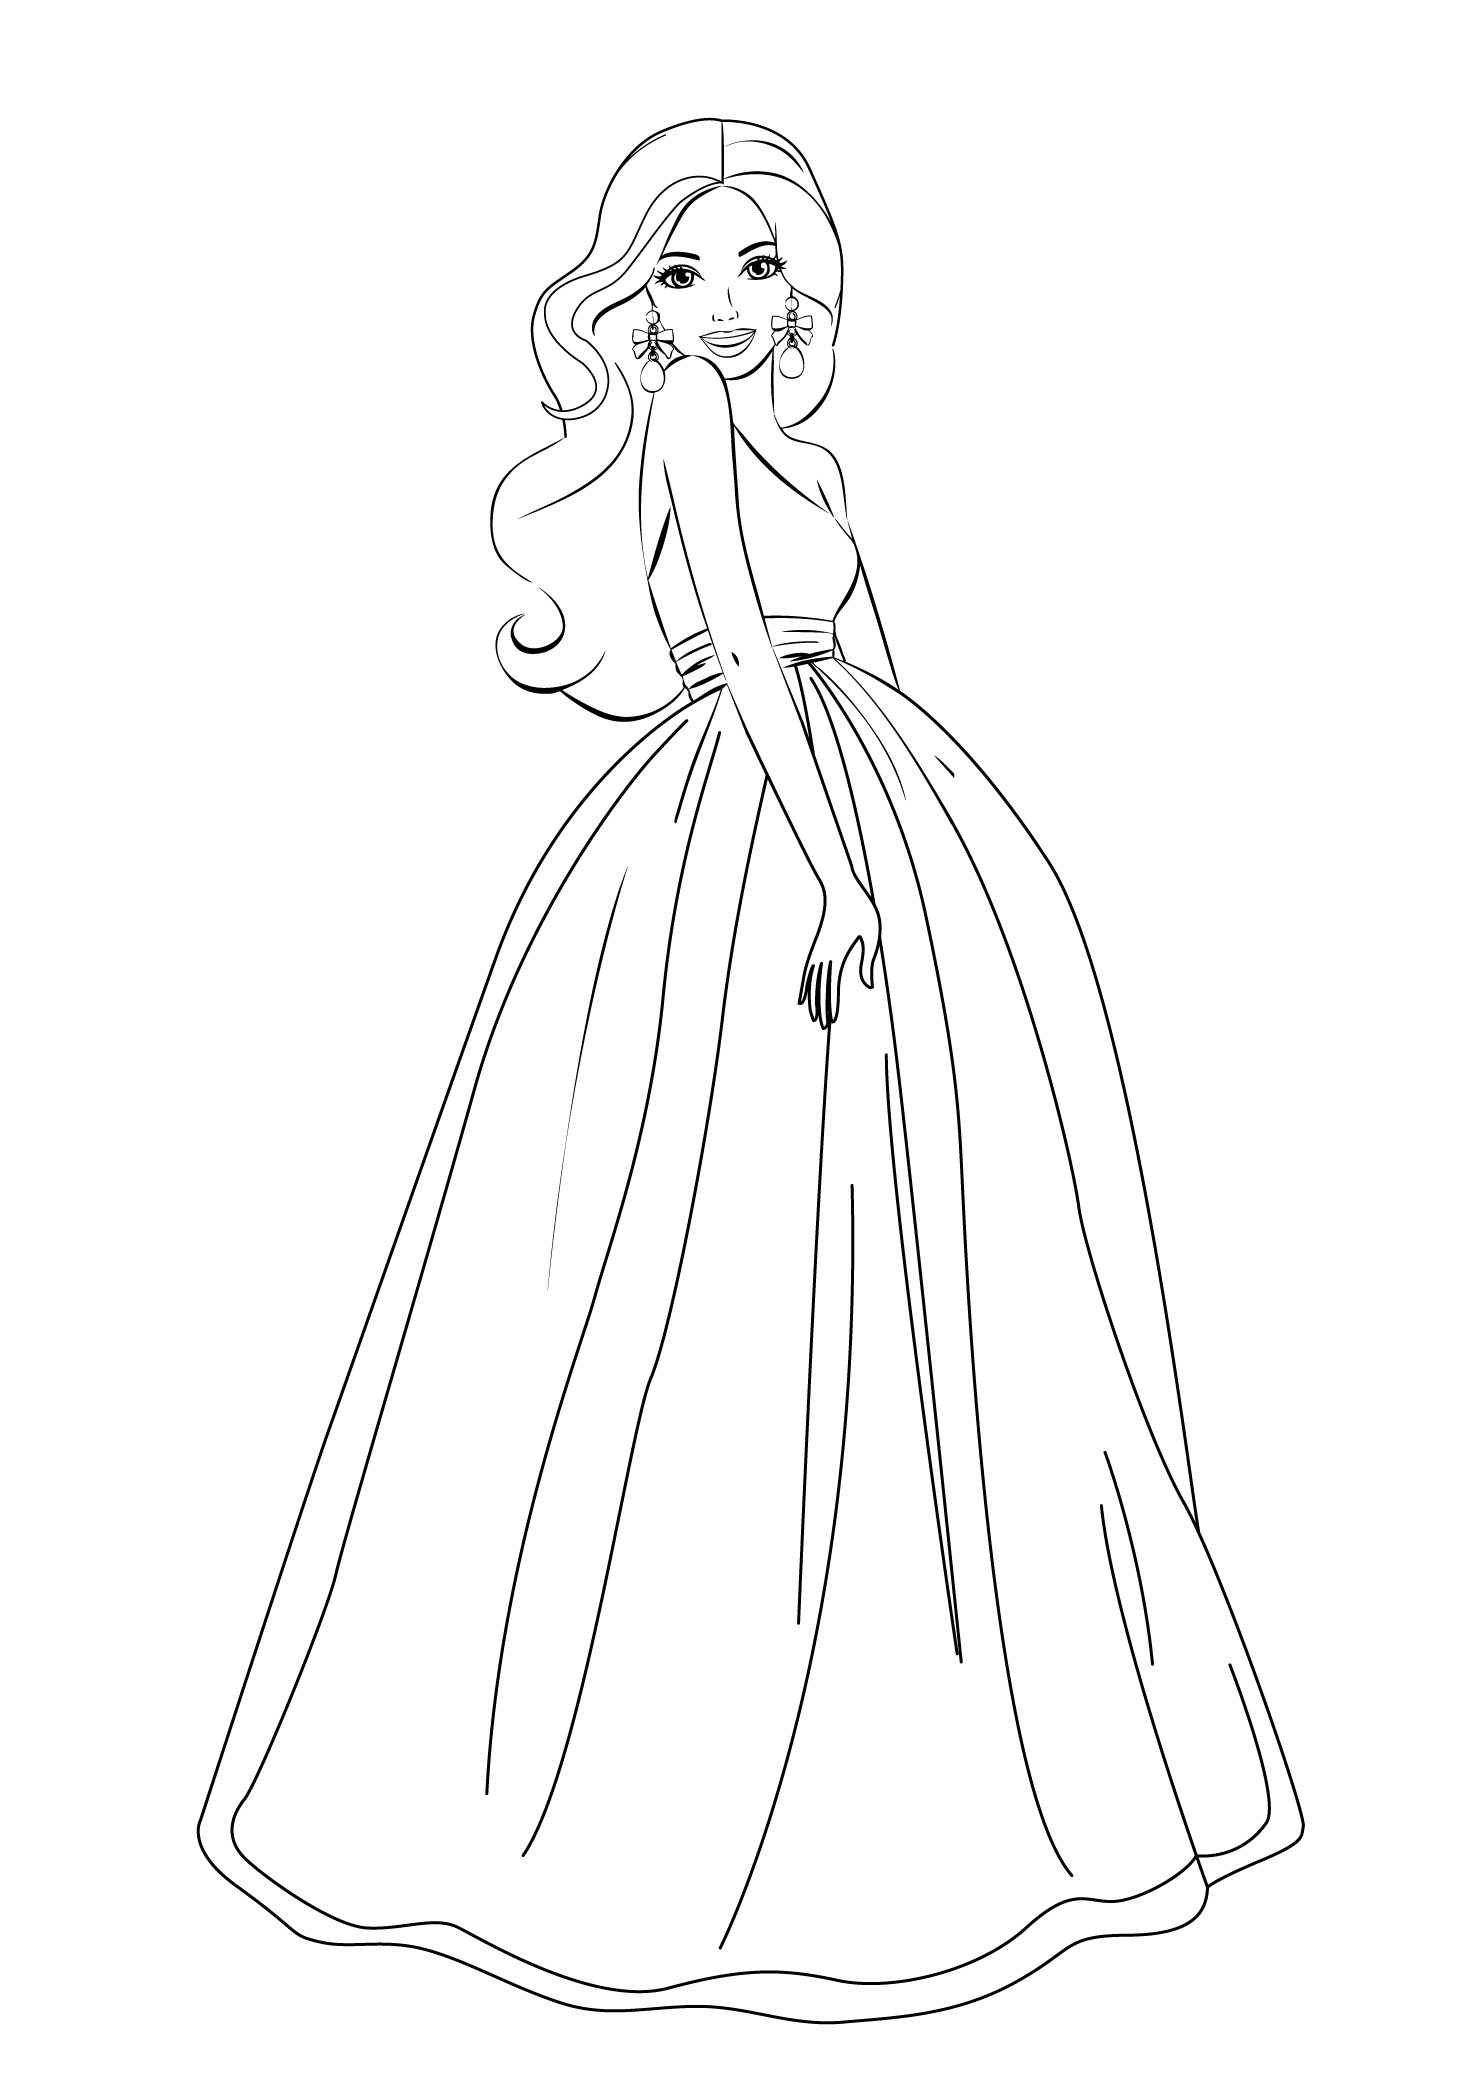 Barbie Princess Mermaid Coloring Pages And Printables Besplatnye